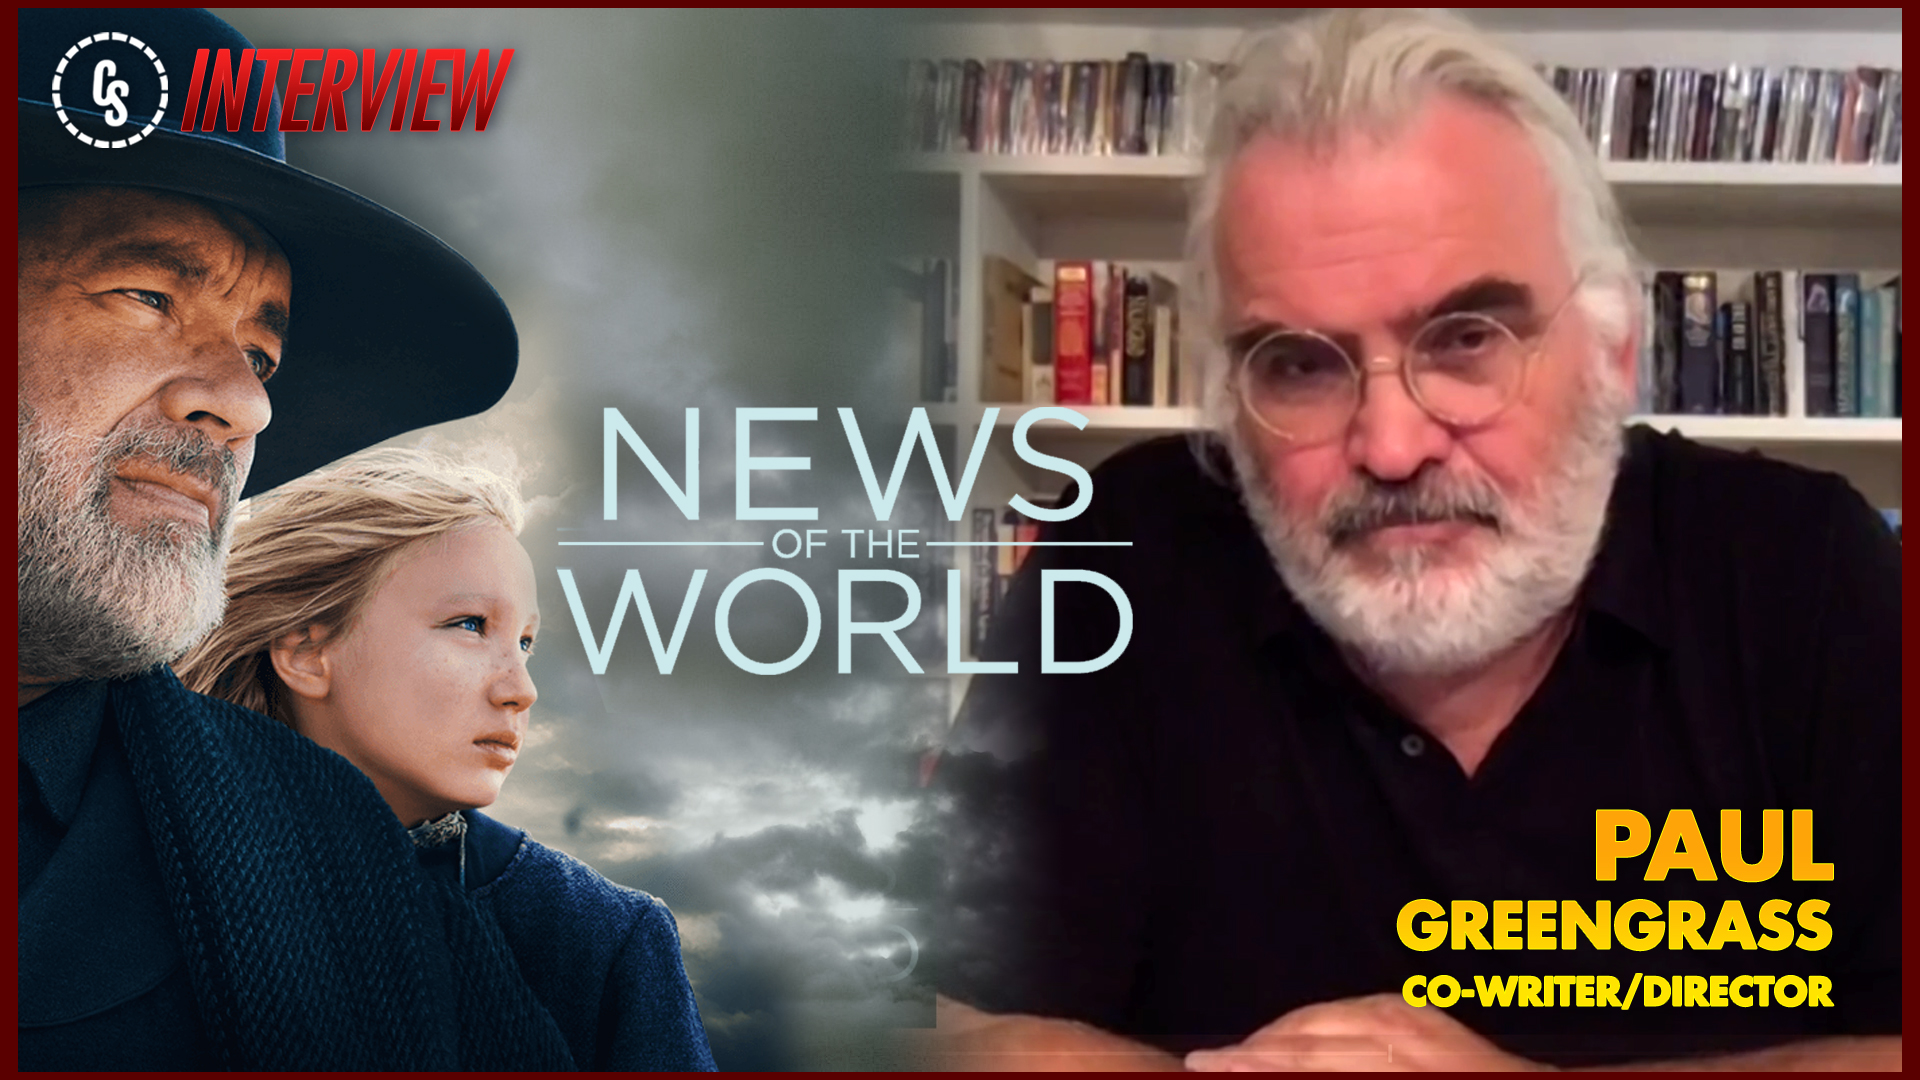 CS Interview: Co-Writer/Director Paul Greengrass on News of the World